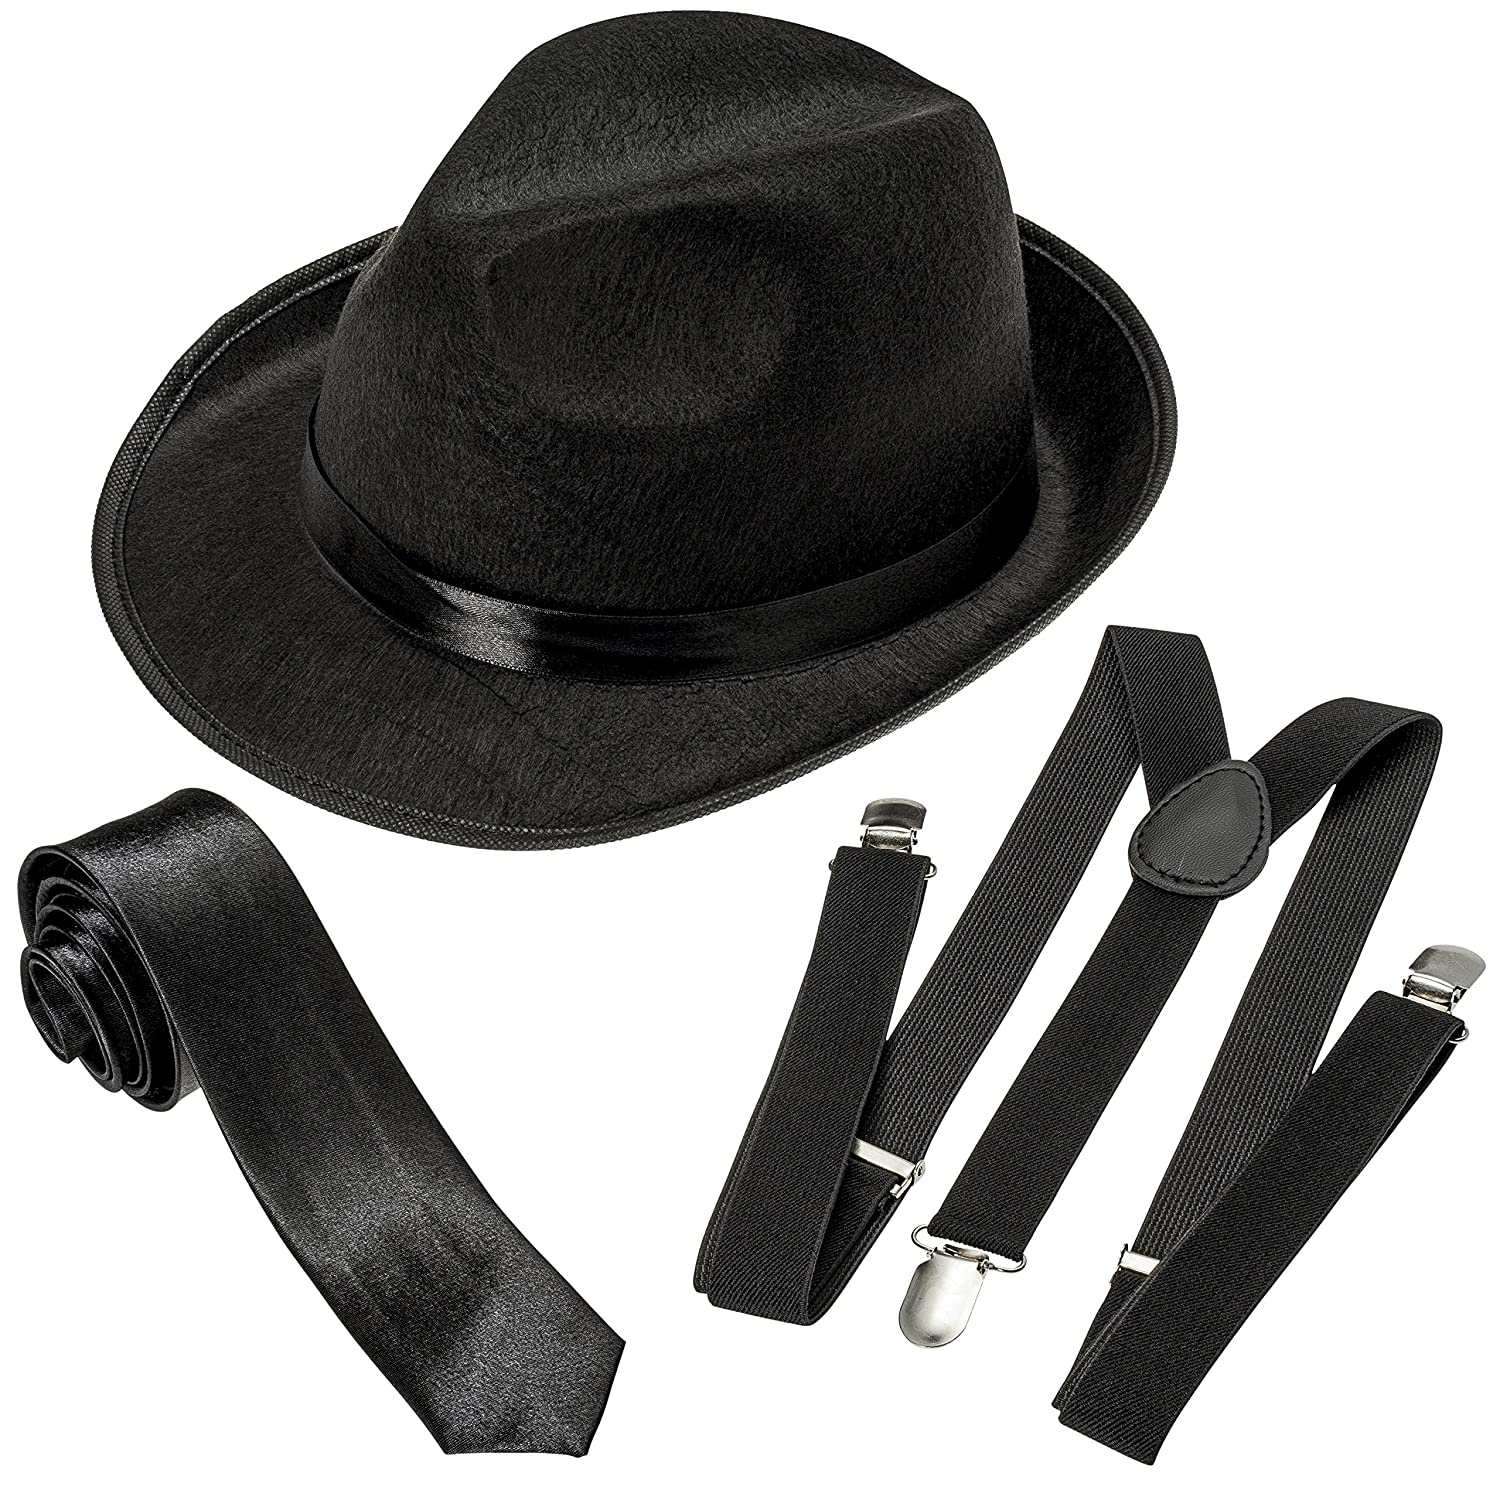 d0a0cce7138a2b Amazon.com: NJ Novelty Gangster Costume Hat, Suspenders and Tie Set Roaring  20s Accessories (Black Hat, Black Suspenders & Black Tie): Clothing